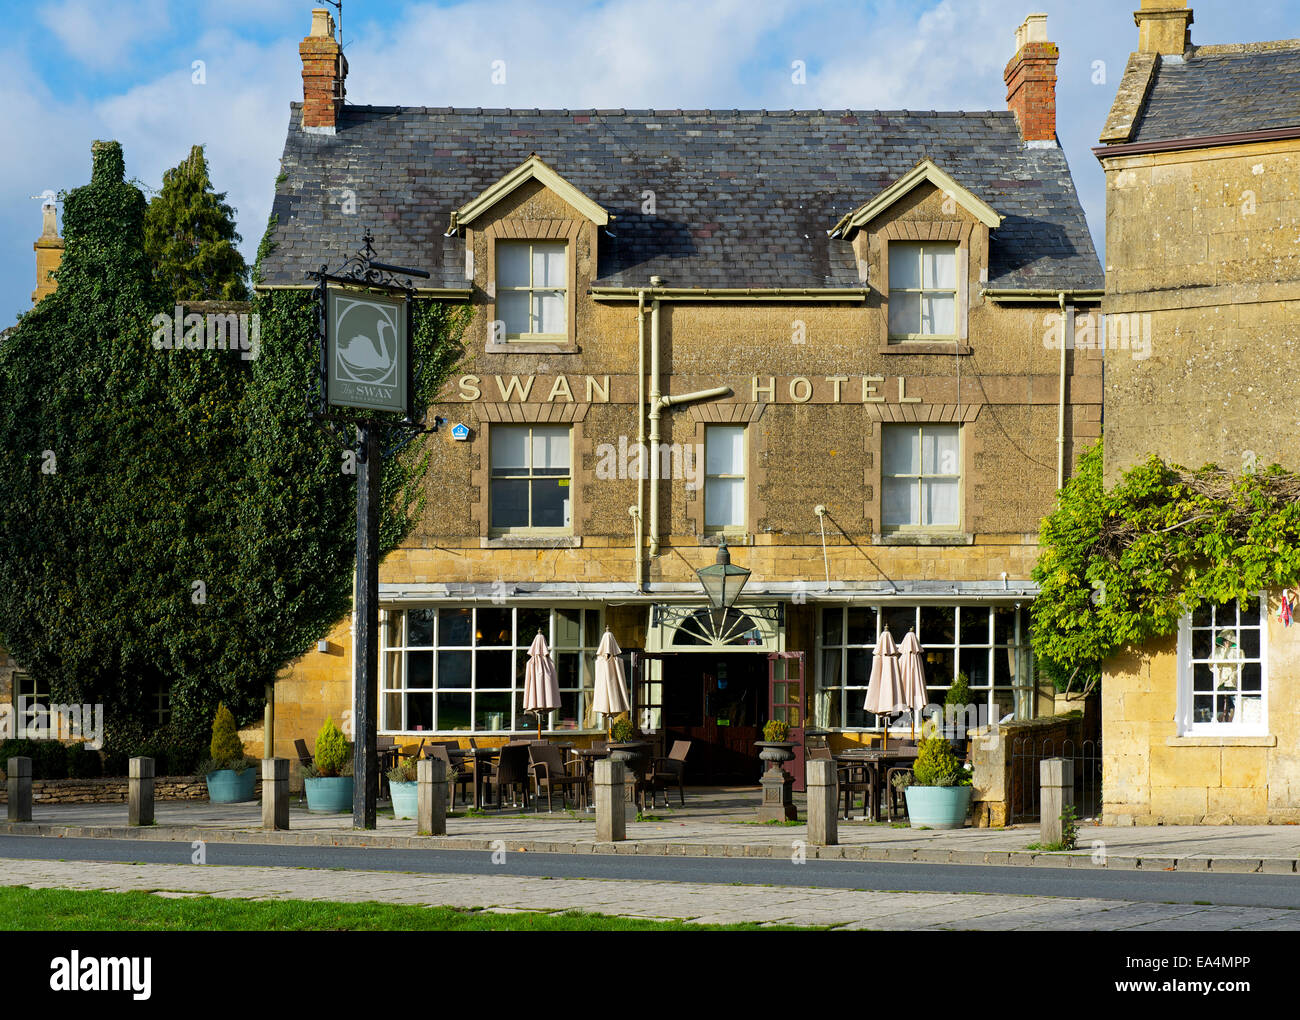 The Swan Hotel in Broadway, Cotswolds, Worcestershire, England UK - Stock Image